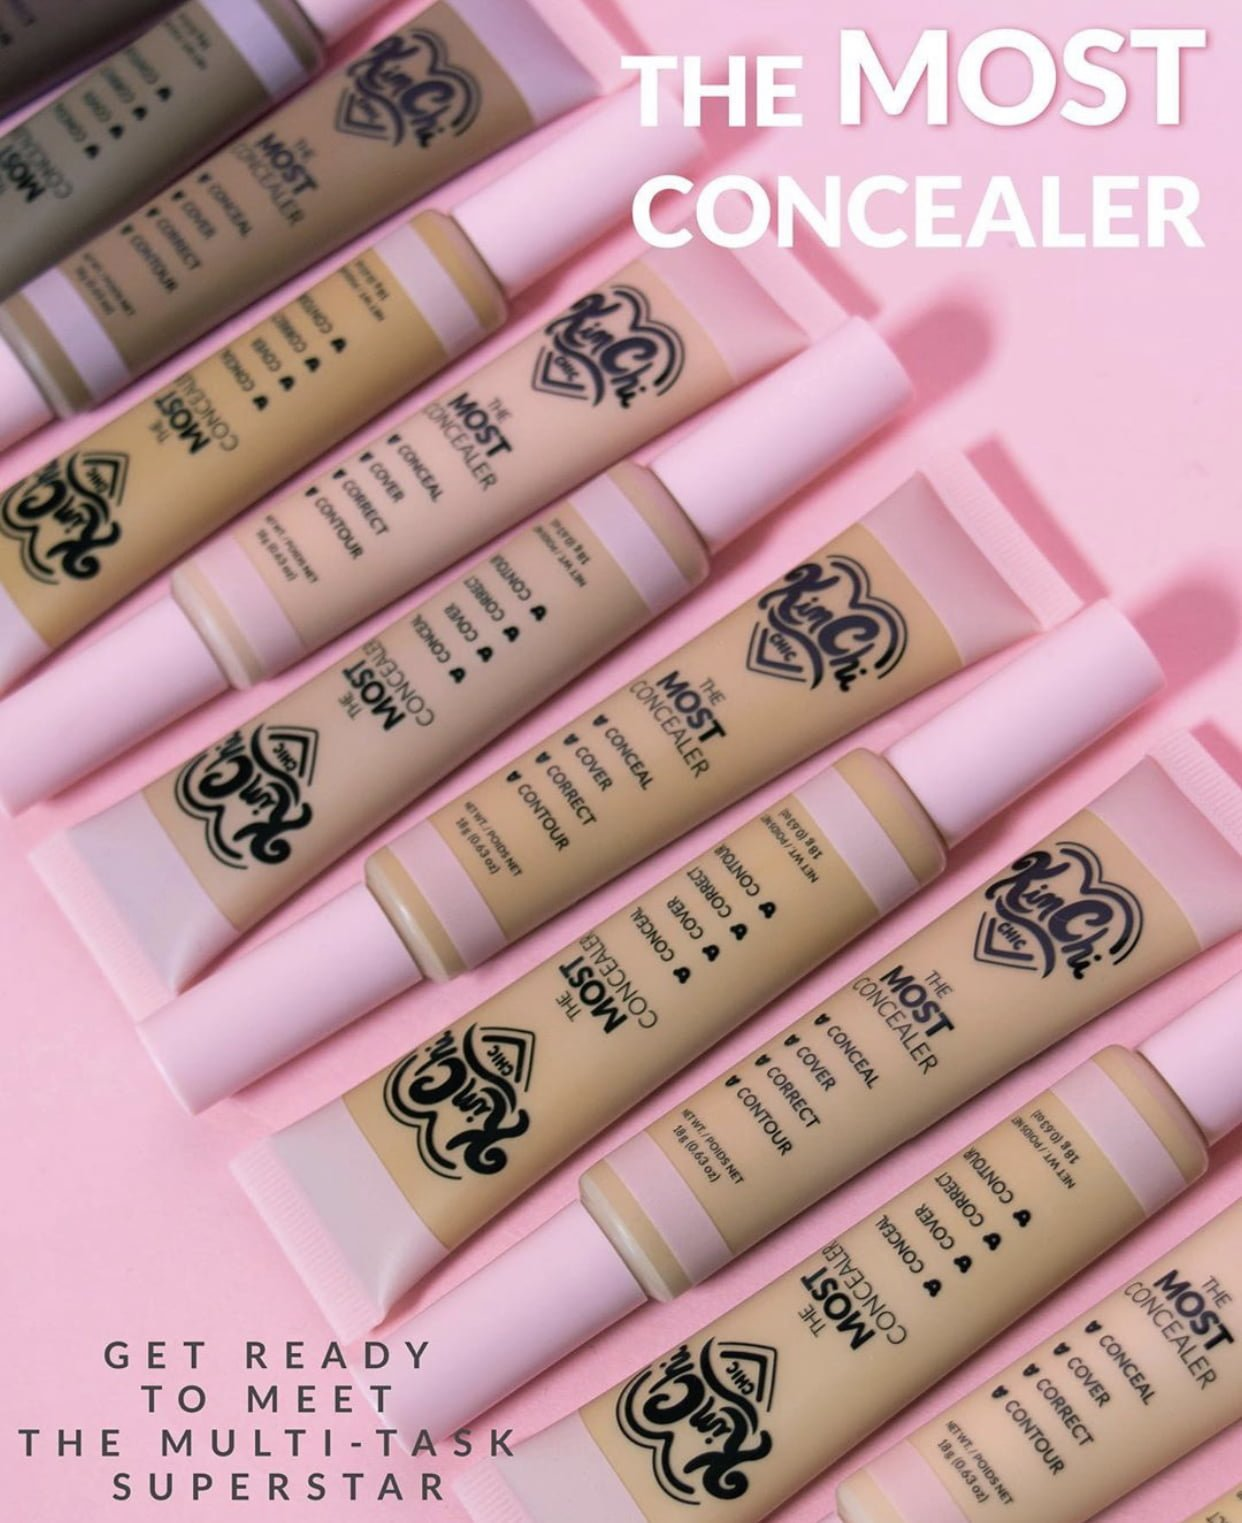 KimChi Chic Beauty The Most Concealer